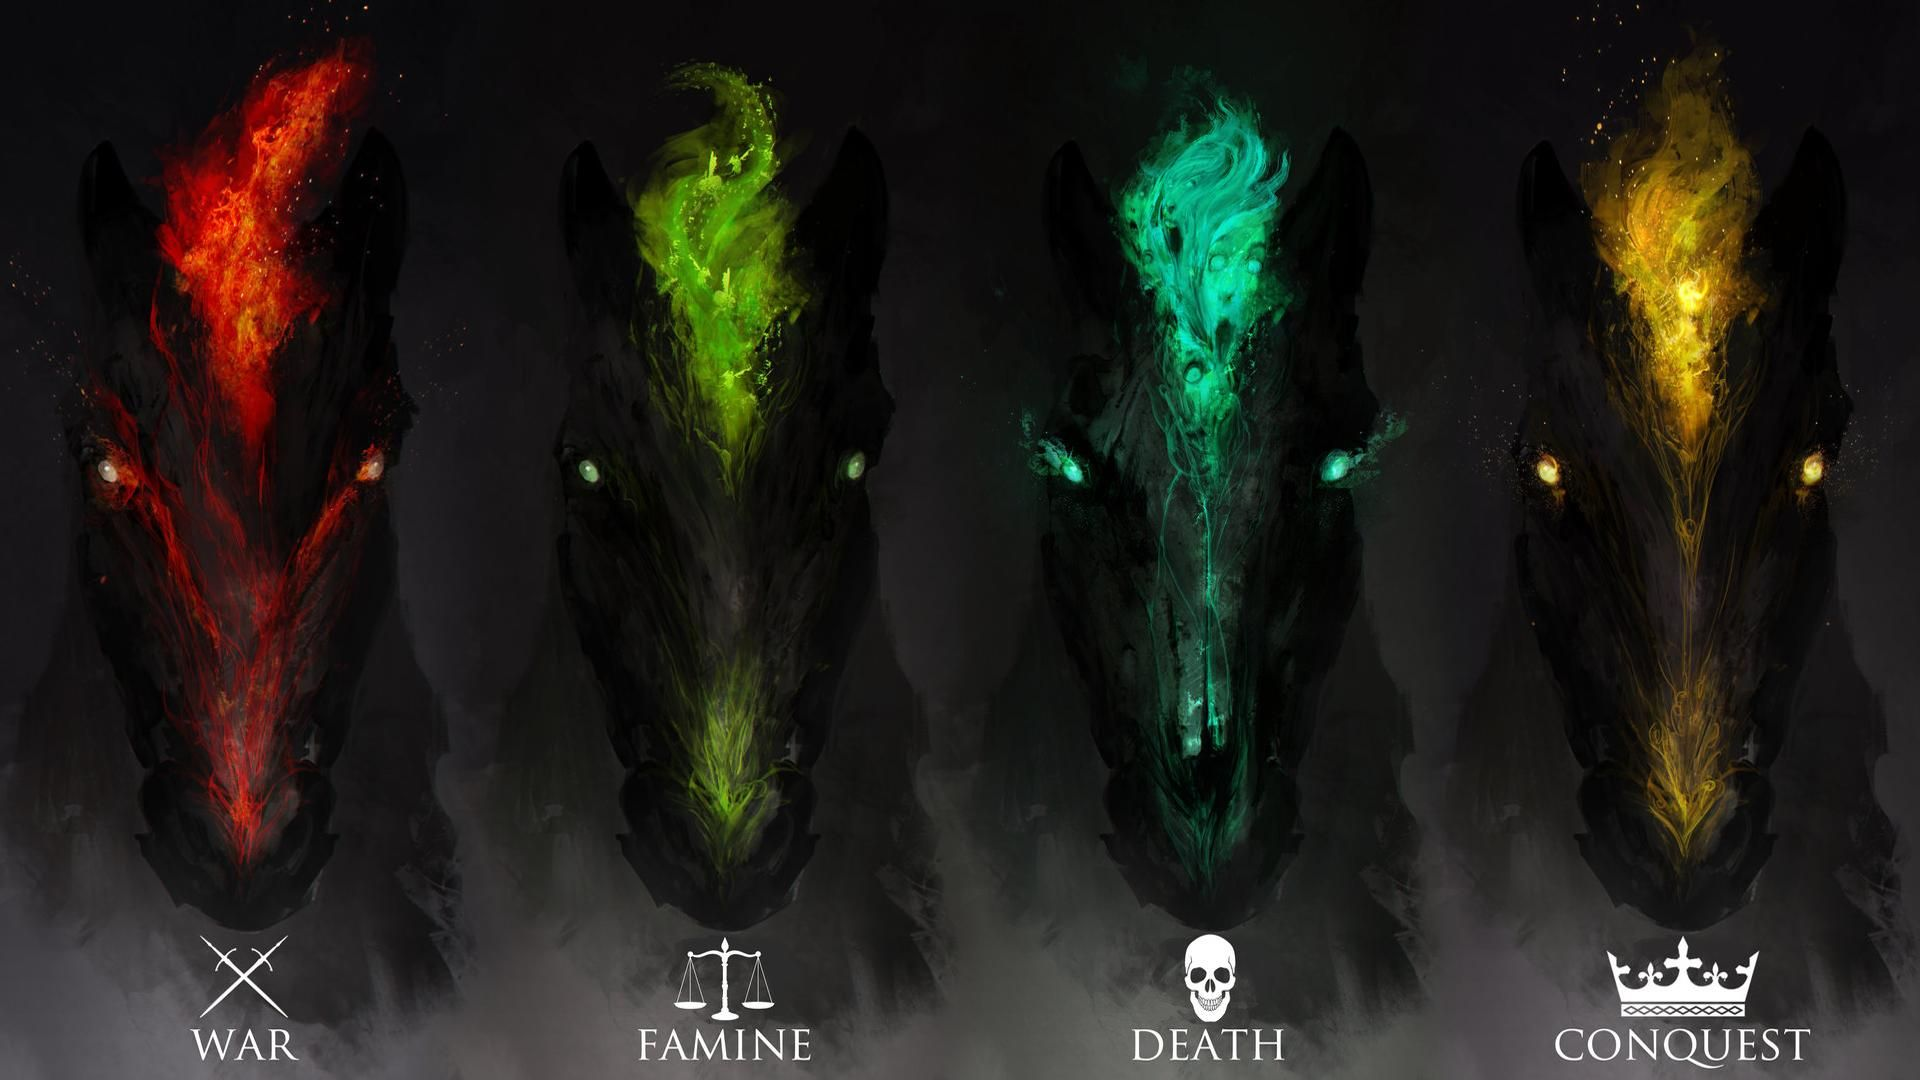 The Four Horseman By Daniel Karamudin Images Edited Composited